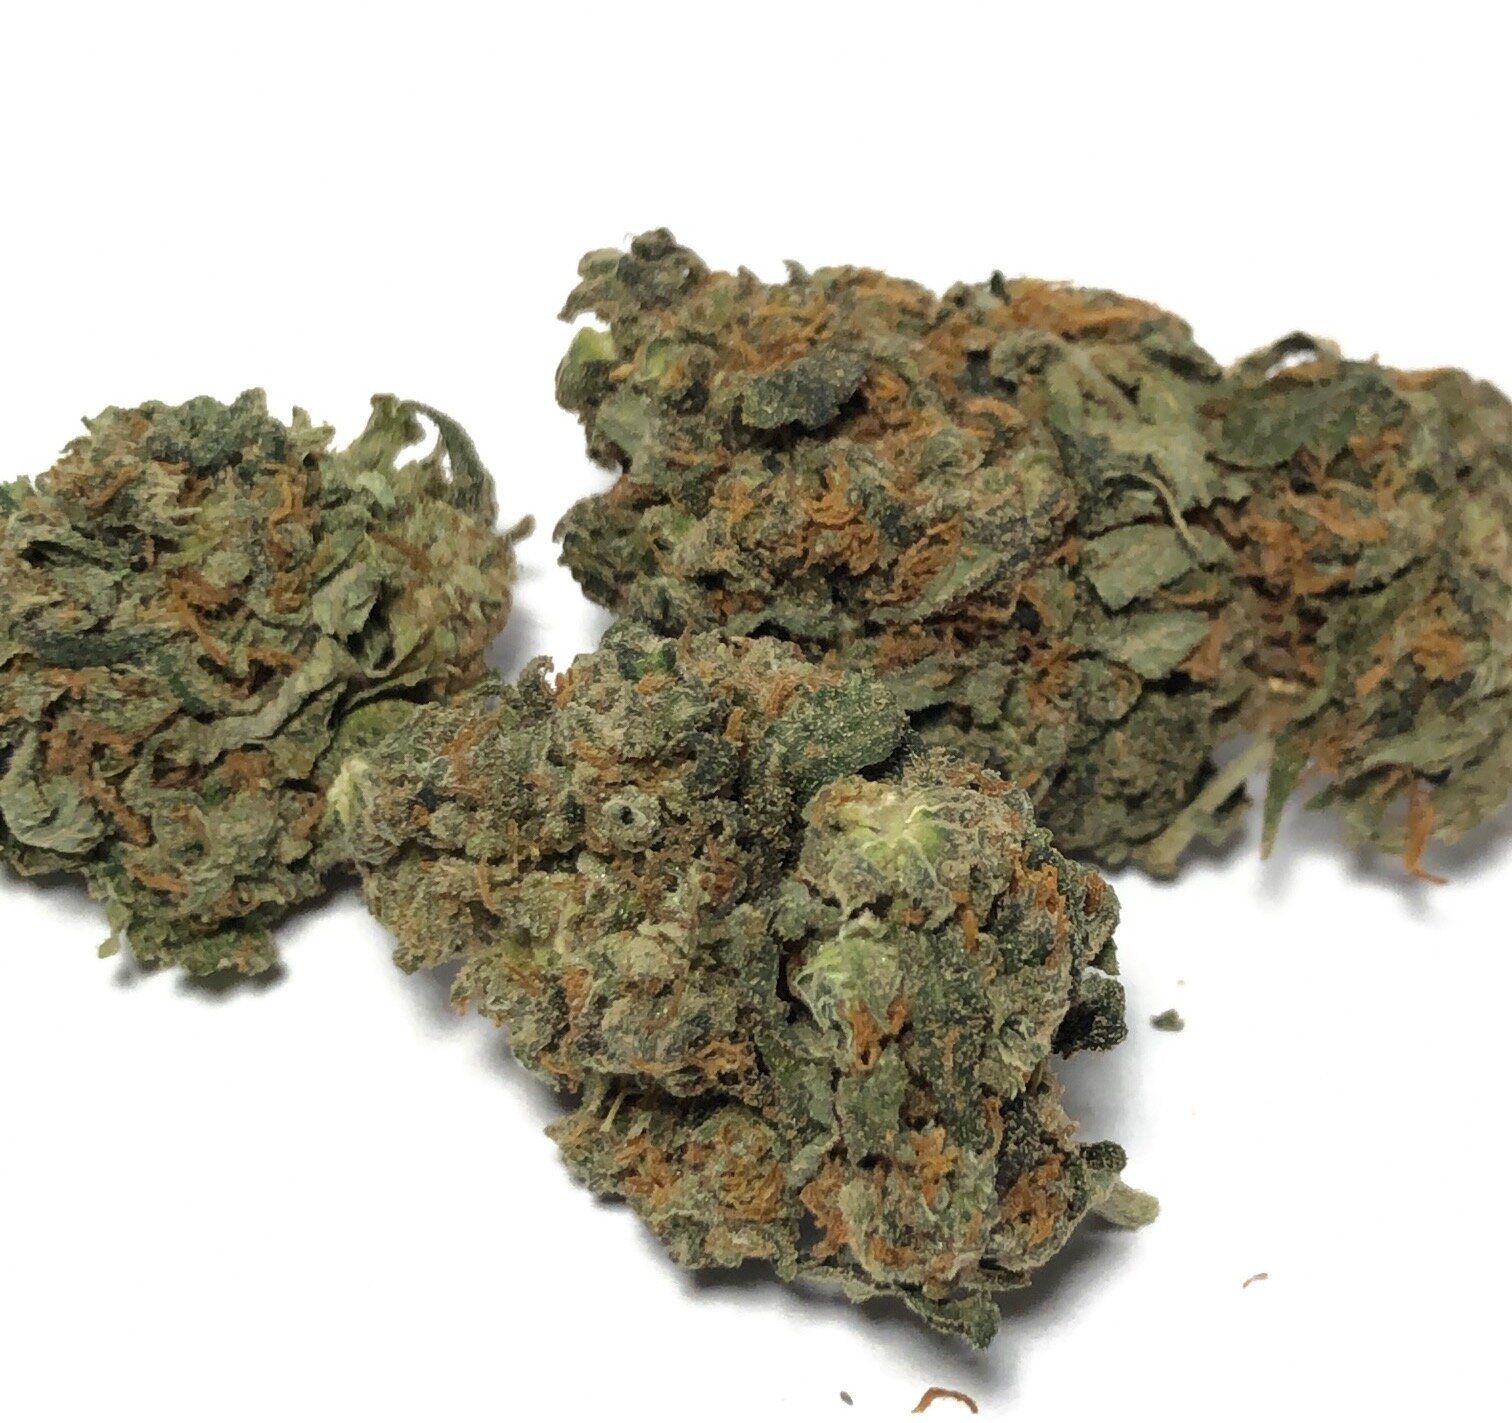 Papa's OG - Indica    $125 - OZ SALE!   Cultivated in Glendale, Arizona exclusively by Arizona Organix, Papas OG is an indica cannabis strain that provides positive and uplifting cerebral effects in unique combination with the classic indica full-body relaxation. Consumers find it to be functional and social while still remaining true to its indica roots. A descendant of Skywalker OG and OG Kush, Papas OG inherits a sweet and earthy grape aroma and potent medicinal effects suitable for patients treating pain, insomnia, and stress disorders.